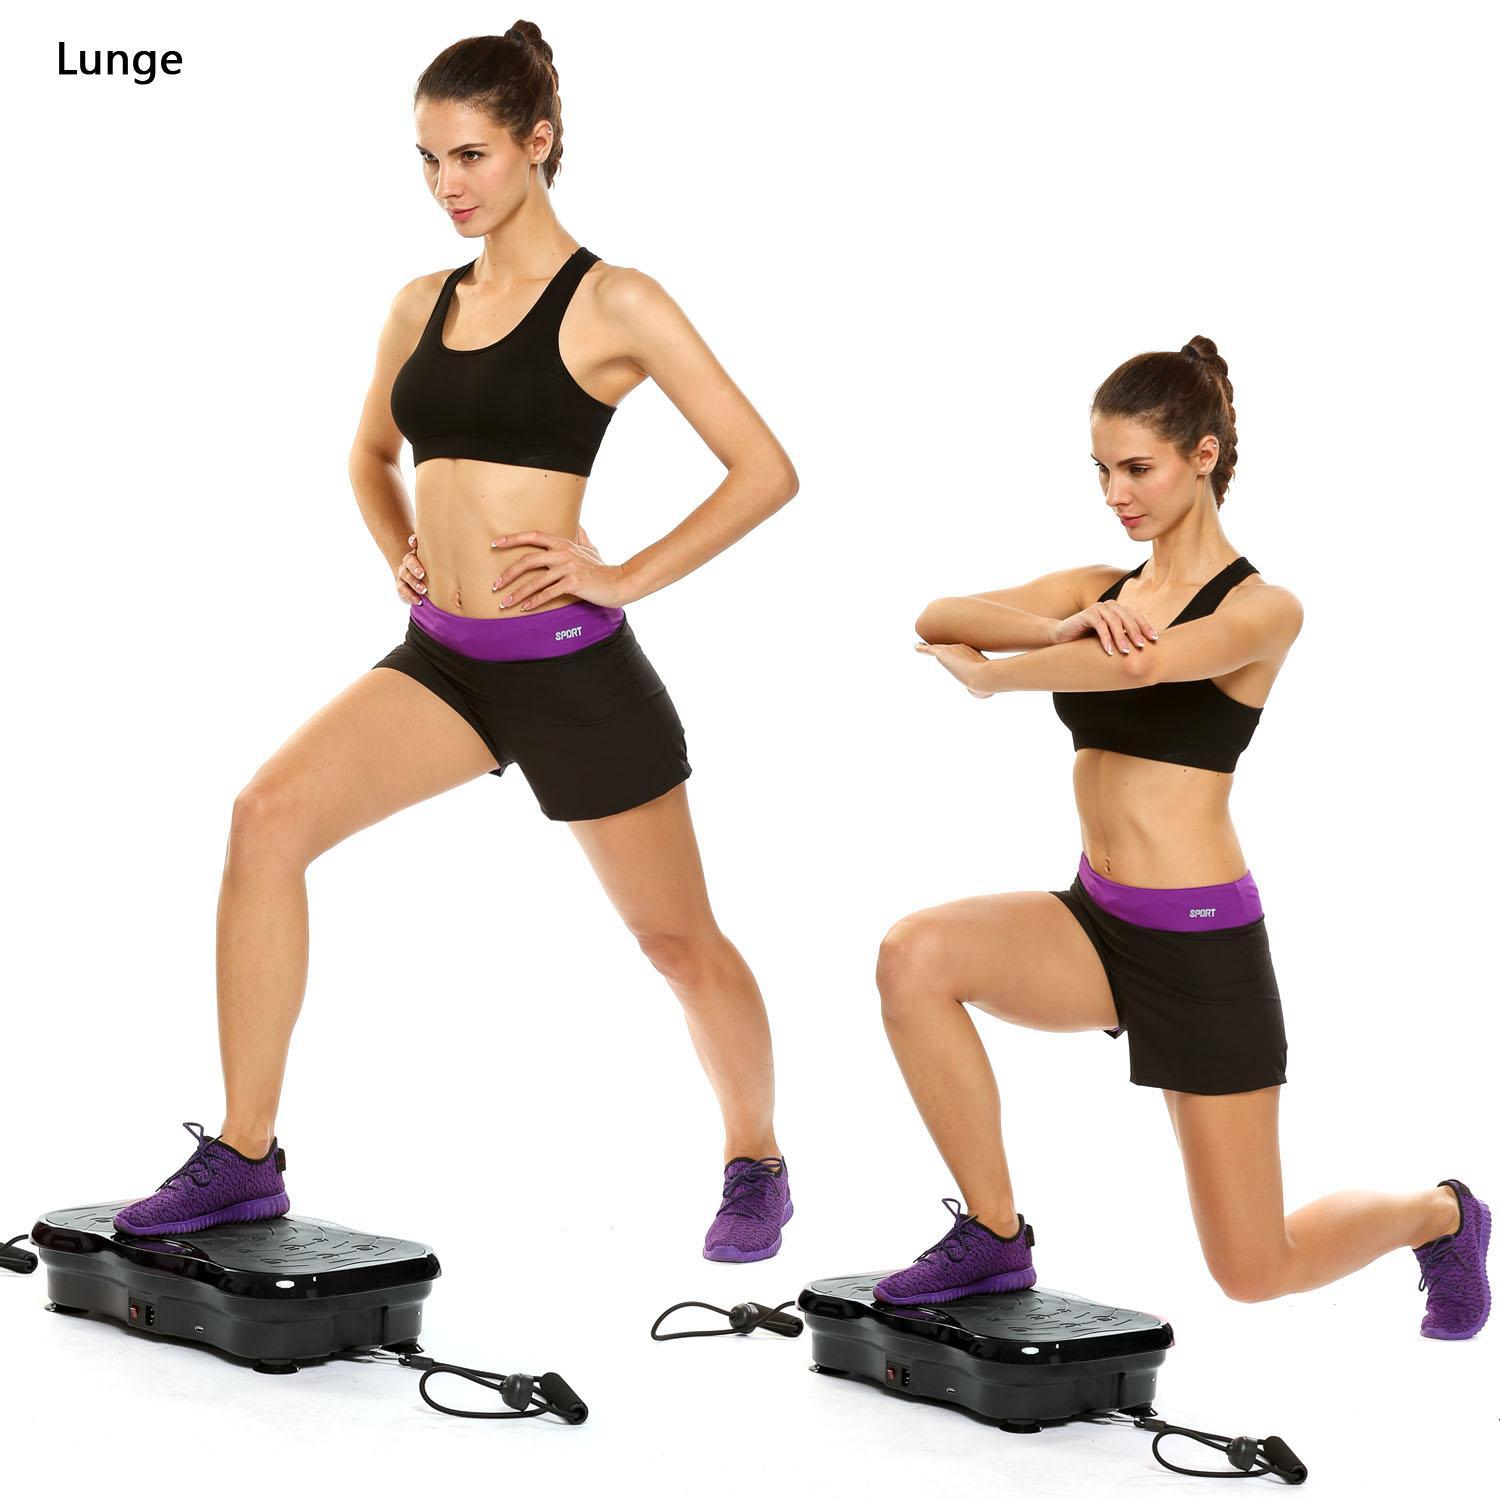 200W Vibration Platform Whole Body Fitness Workout Machine Exercise Equipment